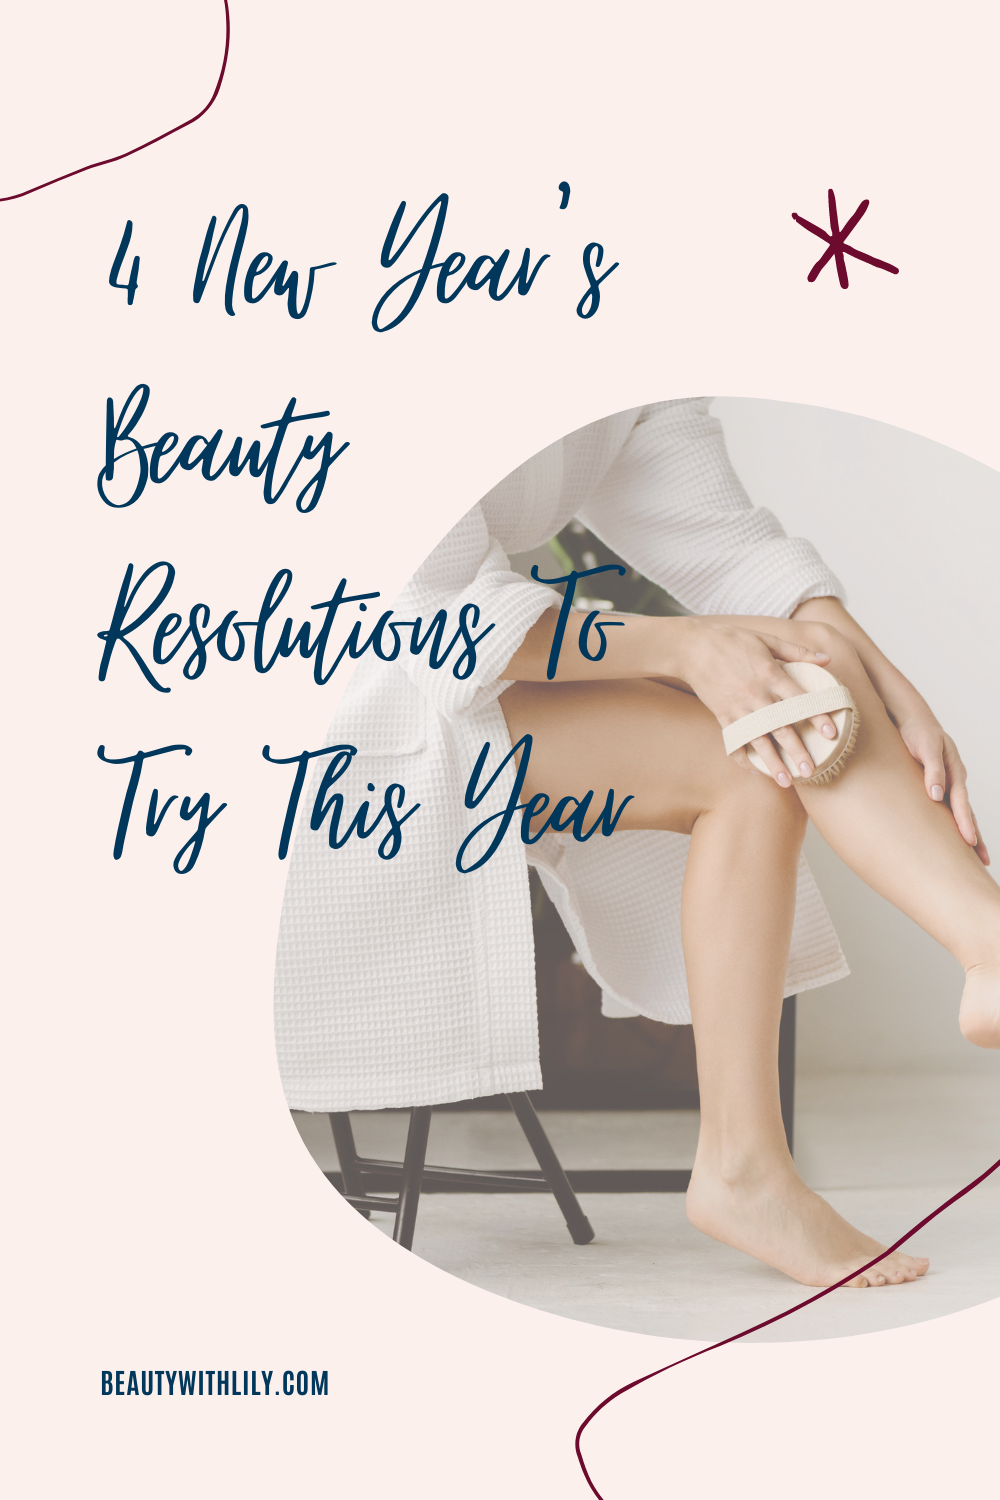 New Year's Beauty Resolutions // New Year's Goals // Self-Care Routine // Beauty Routines | Beauty With Lily #selfcare #newyearsresolutions